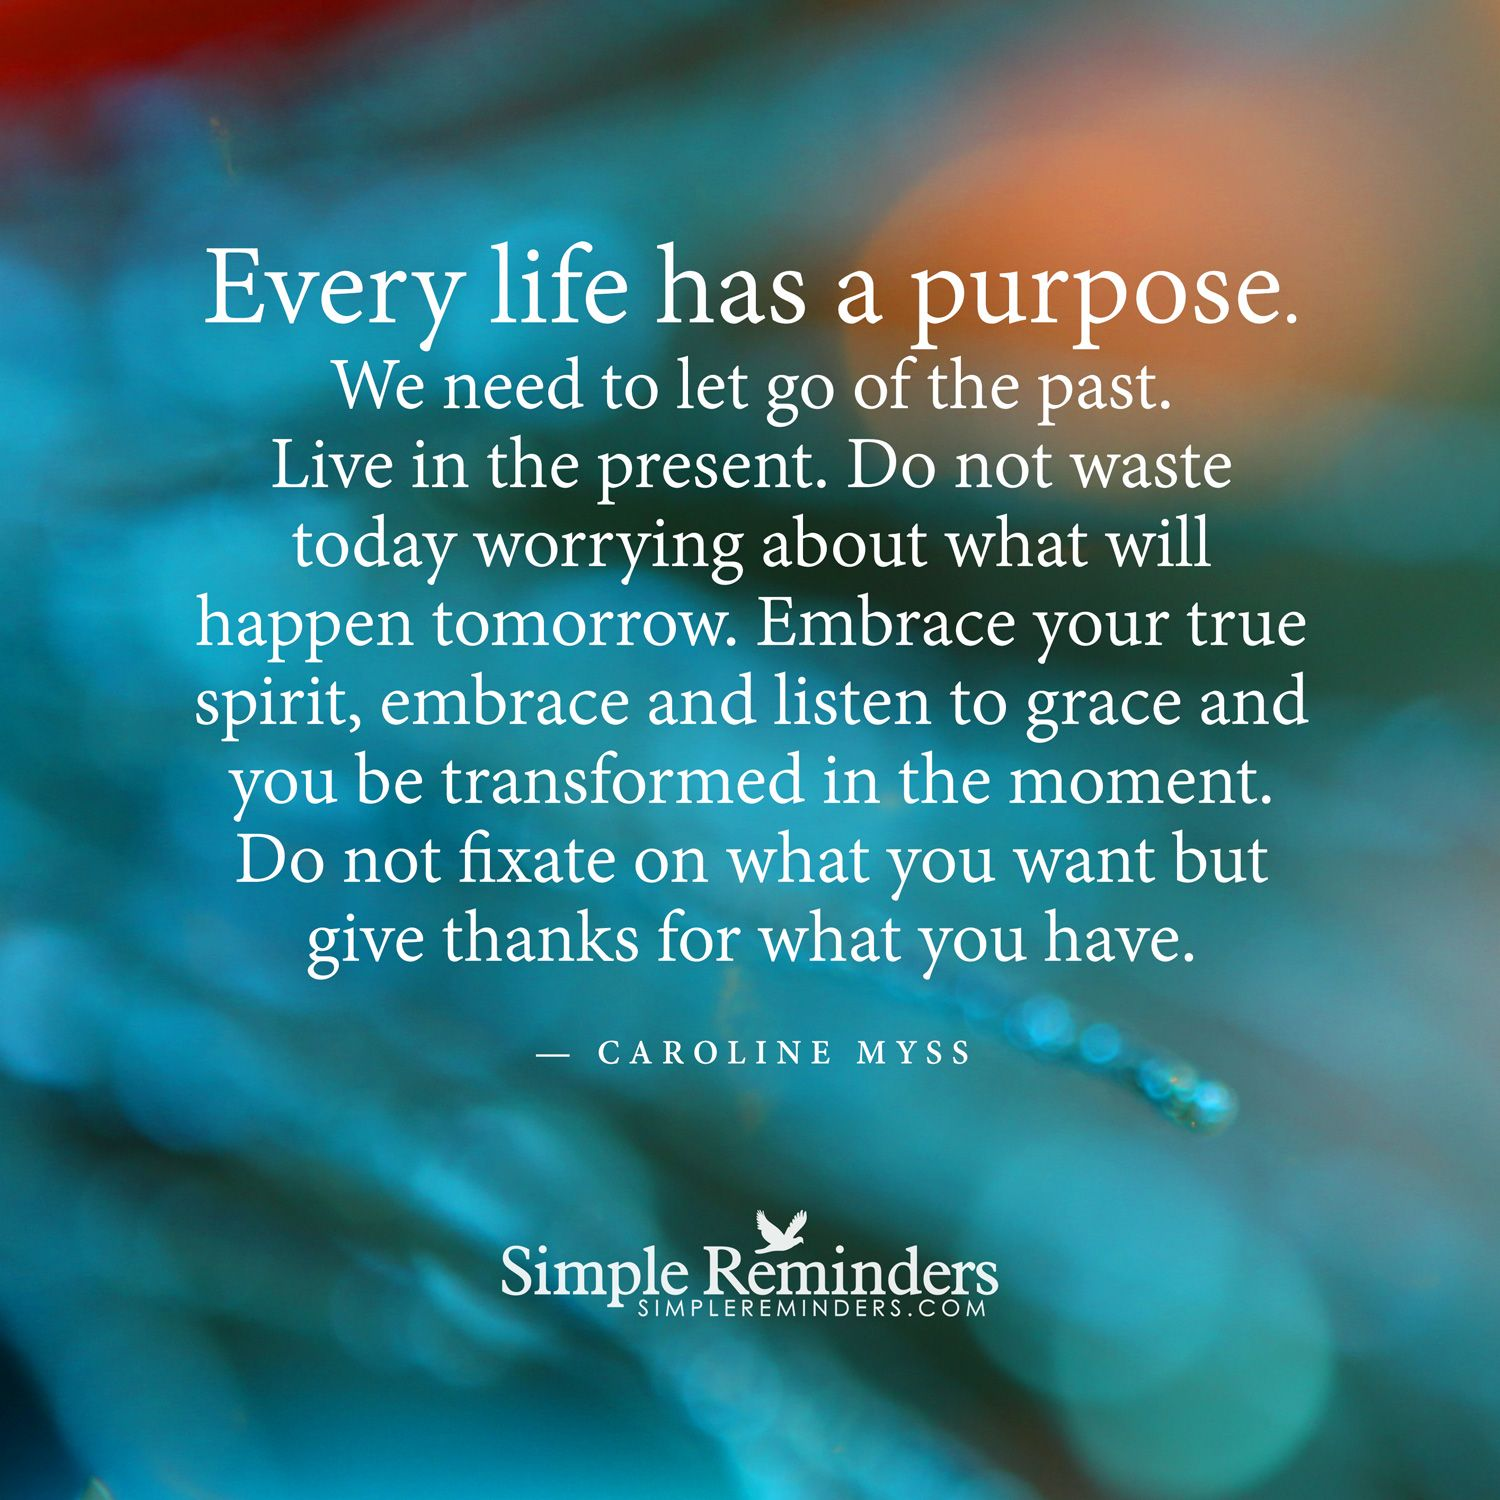 Every life has a purpose. We need to let go of the past